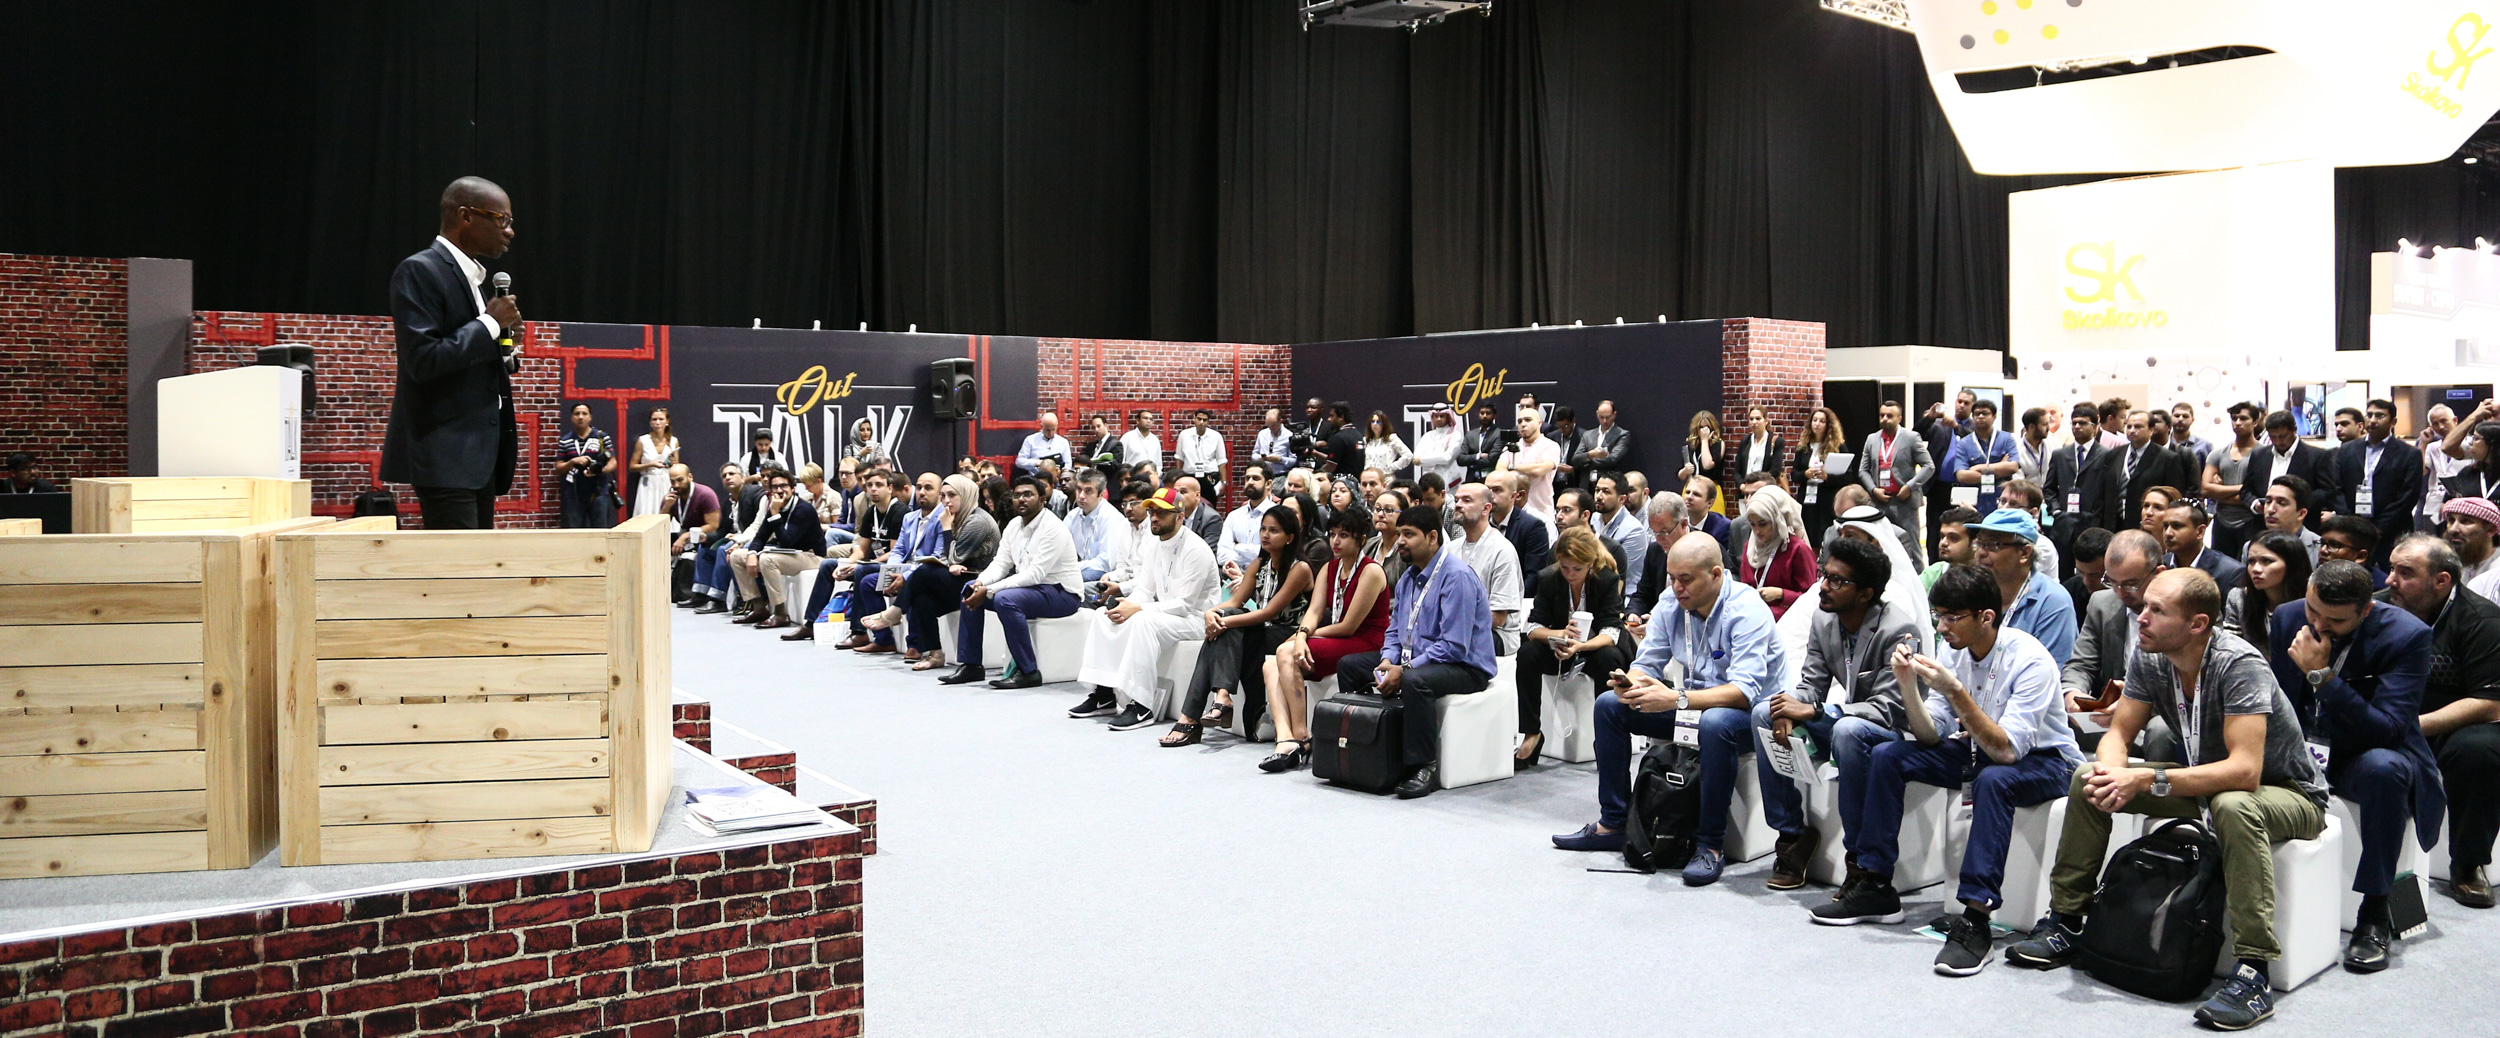 Dubai Tourism launches major international startup competition in collaboration with GITEX Future Stars